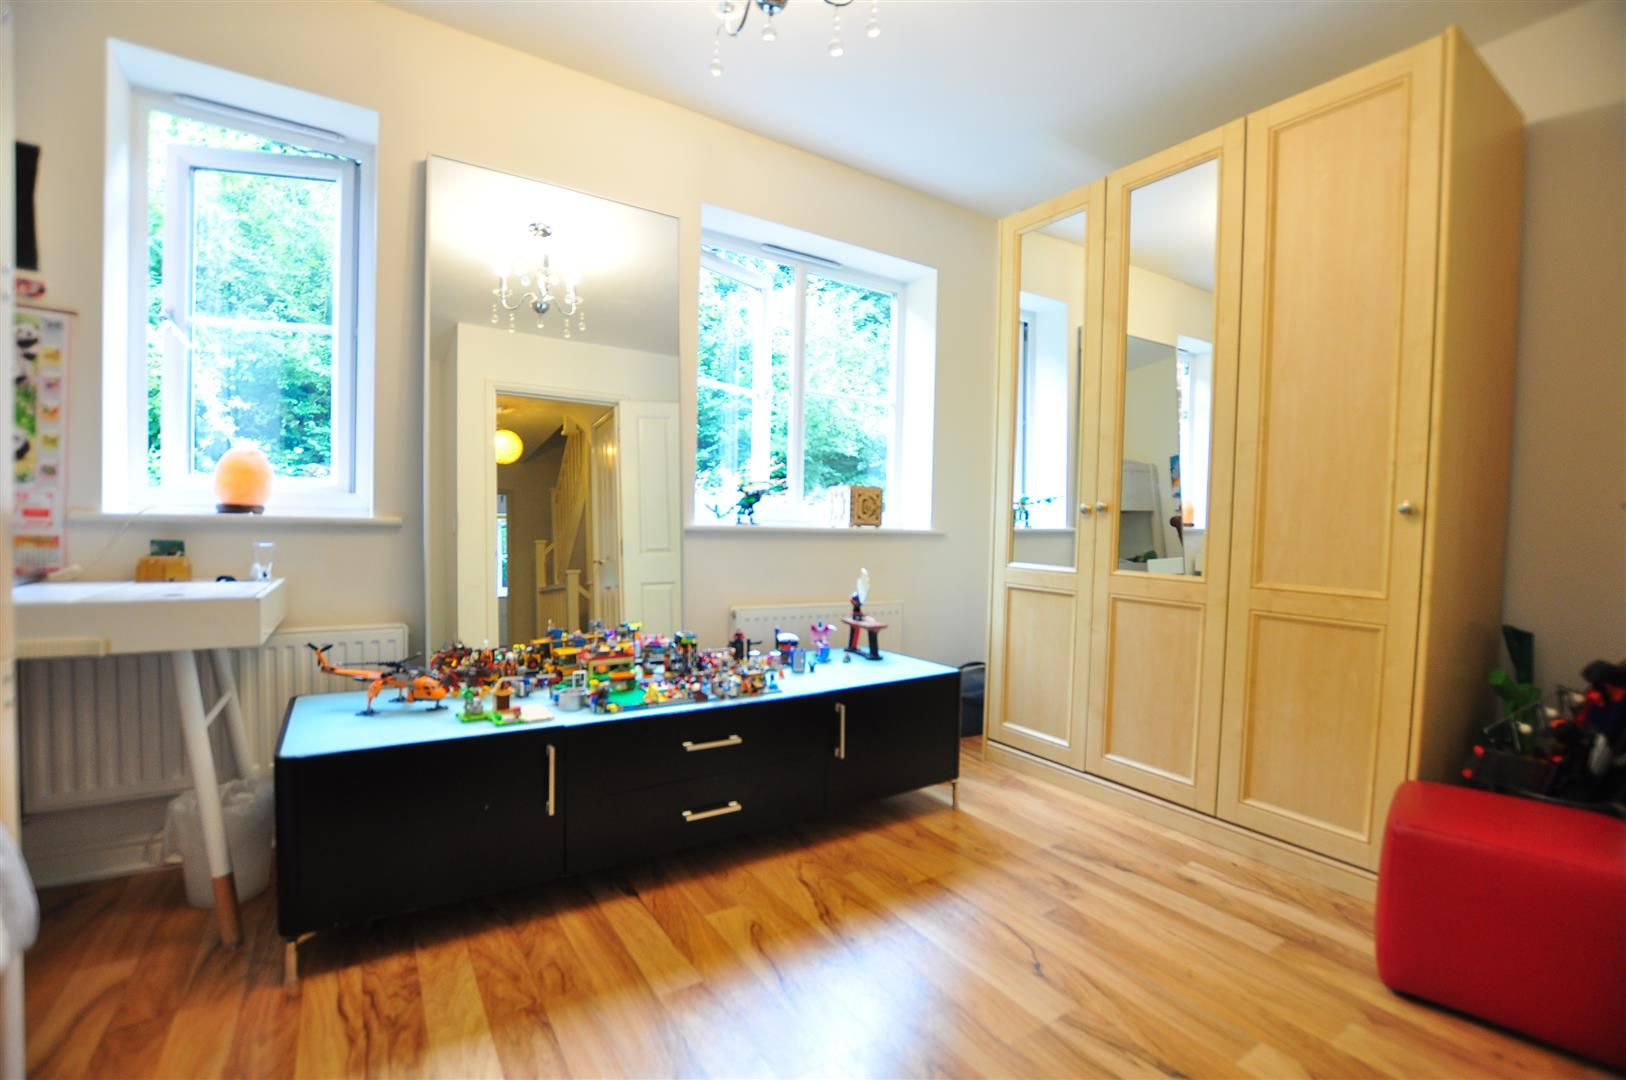 4 bed end-of-terrace for sale 12